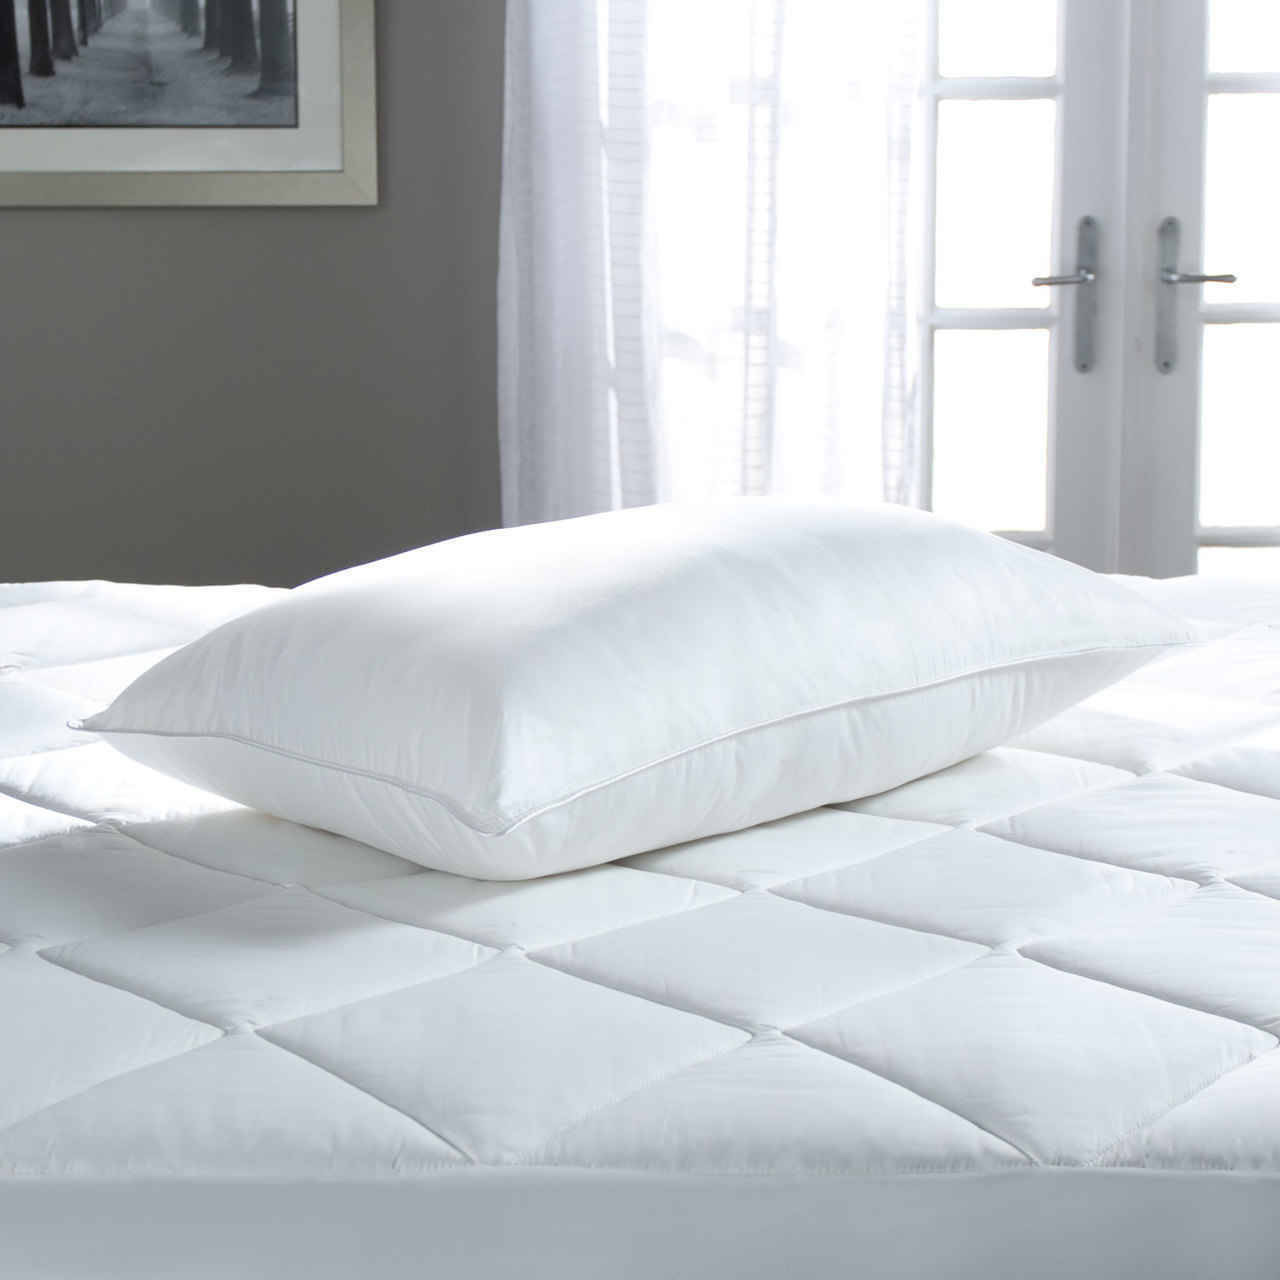 DownLite Bedding Down Alternative PillowsorPrimaLoft Luxury Collection